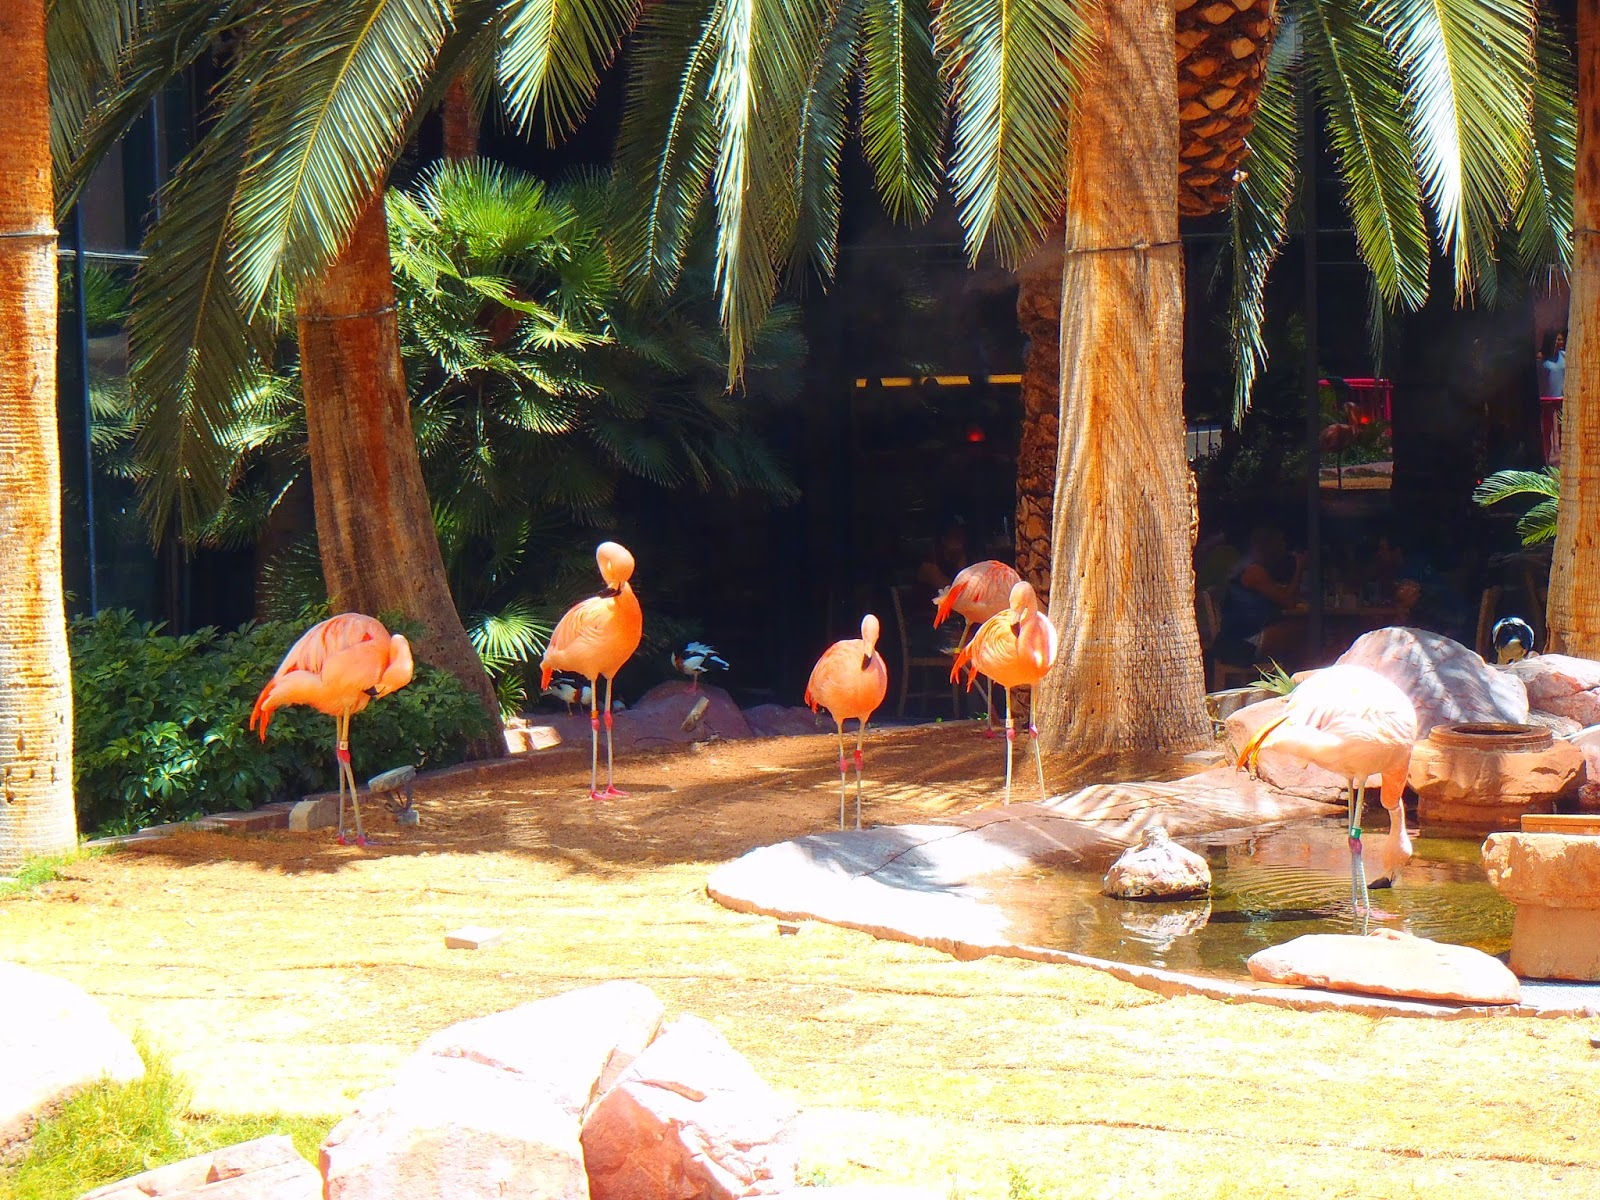 flamingos at the flamingo hotel and casino